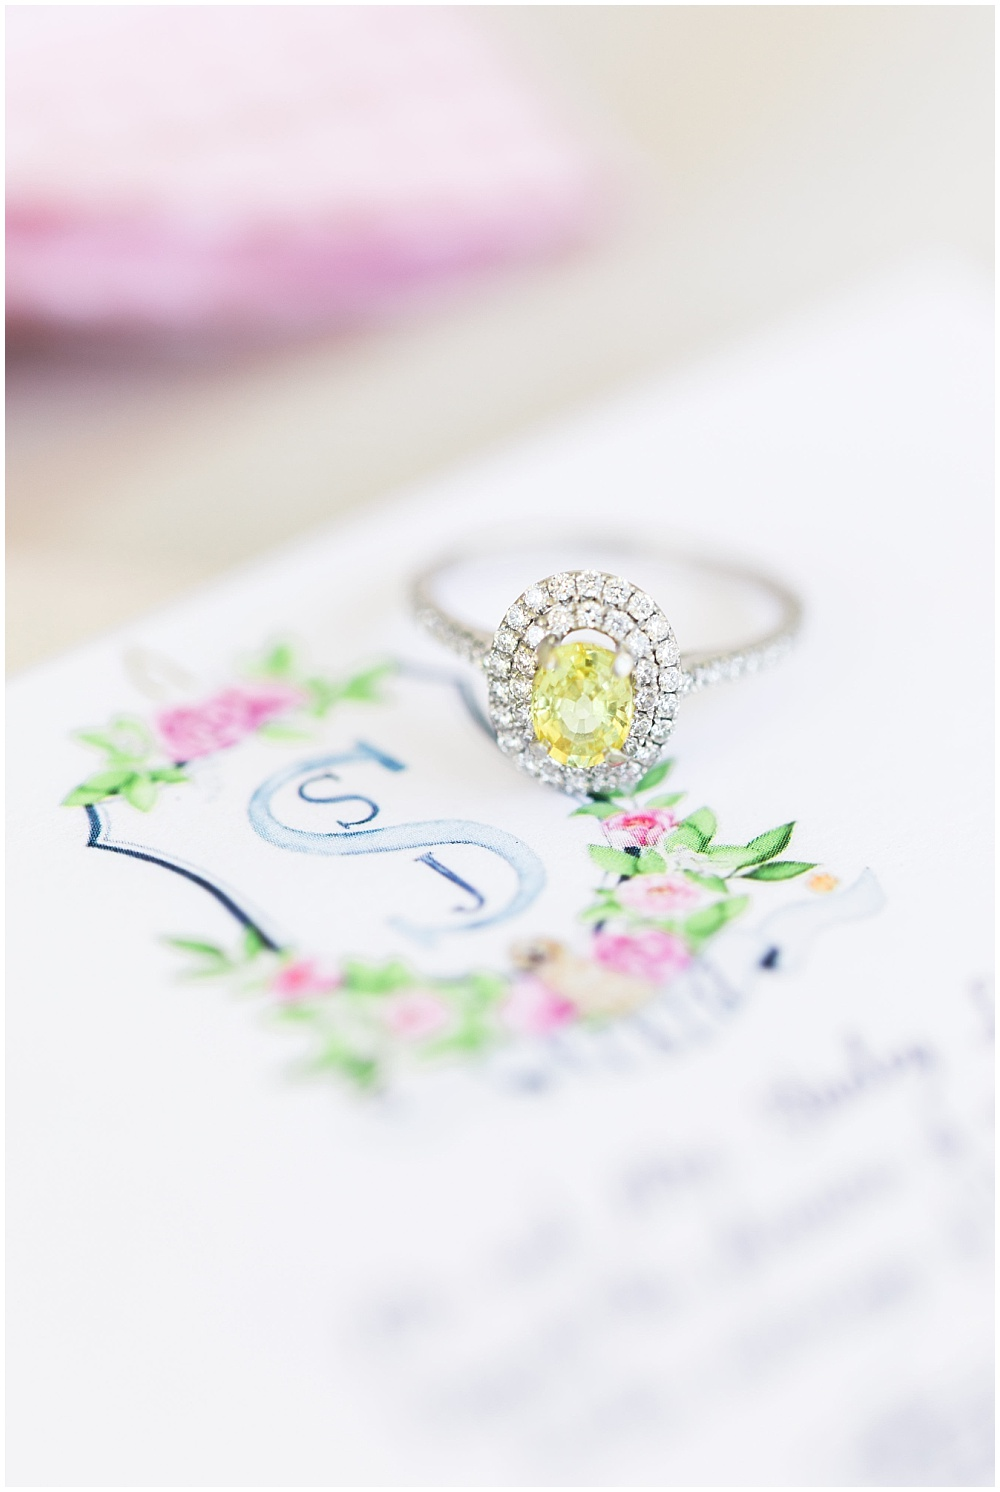 Custom wedding invitation with canary diamond ring, navy and pink southern wedding | Ivan & Louise Images and Jessica Dum Wedding Coordination